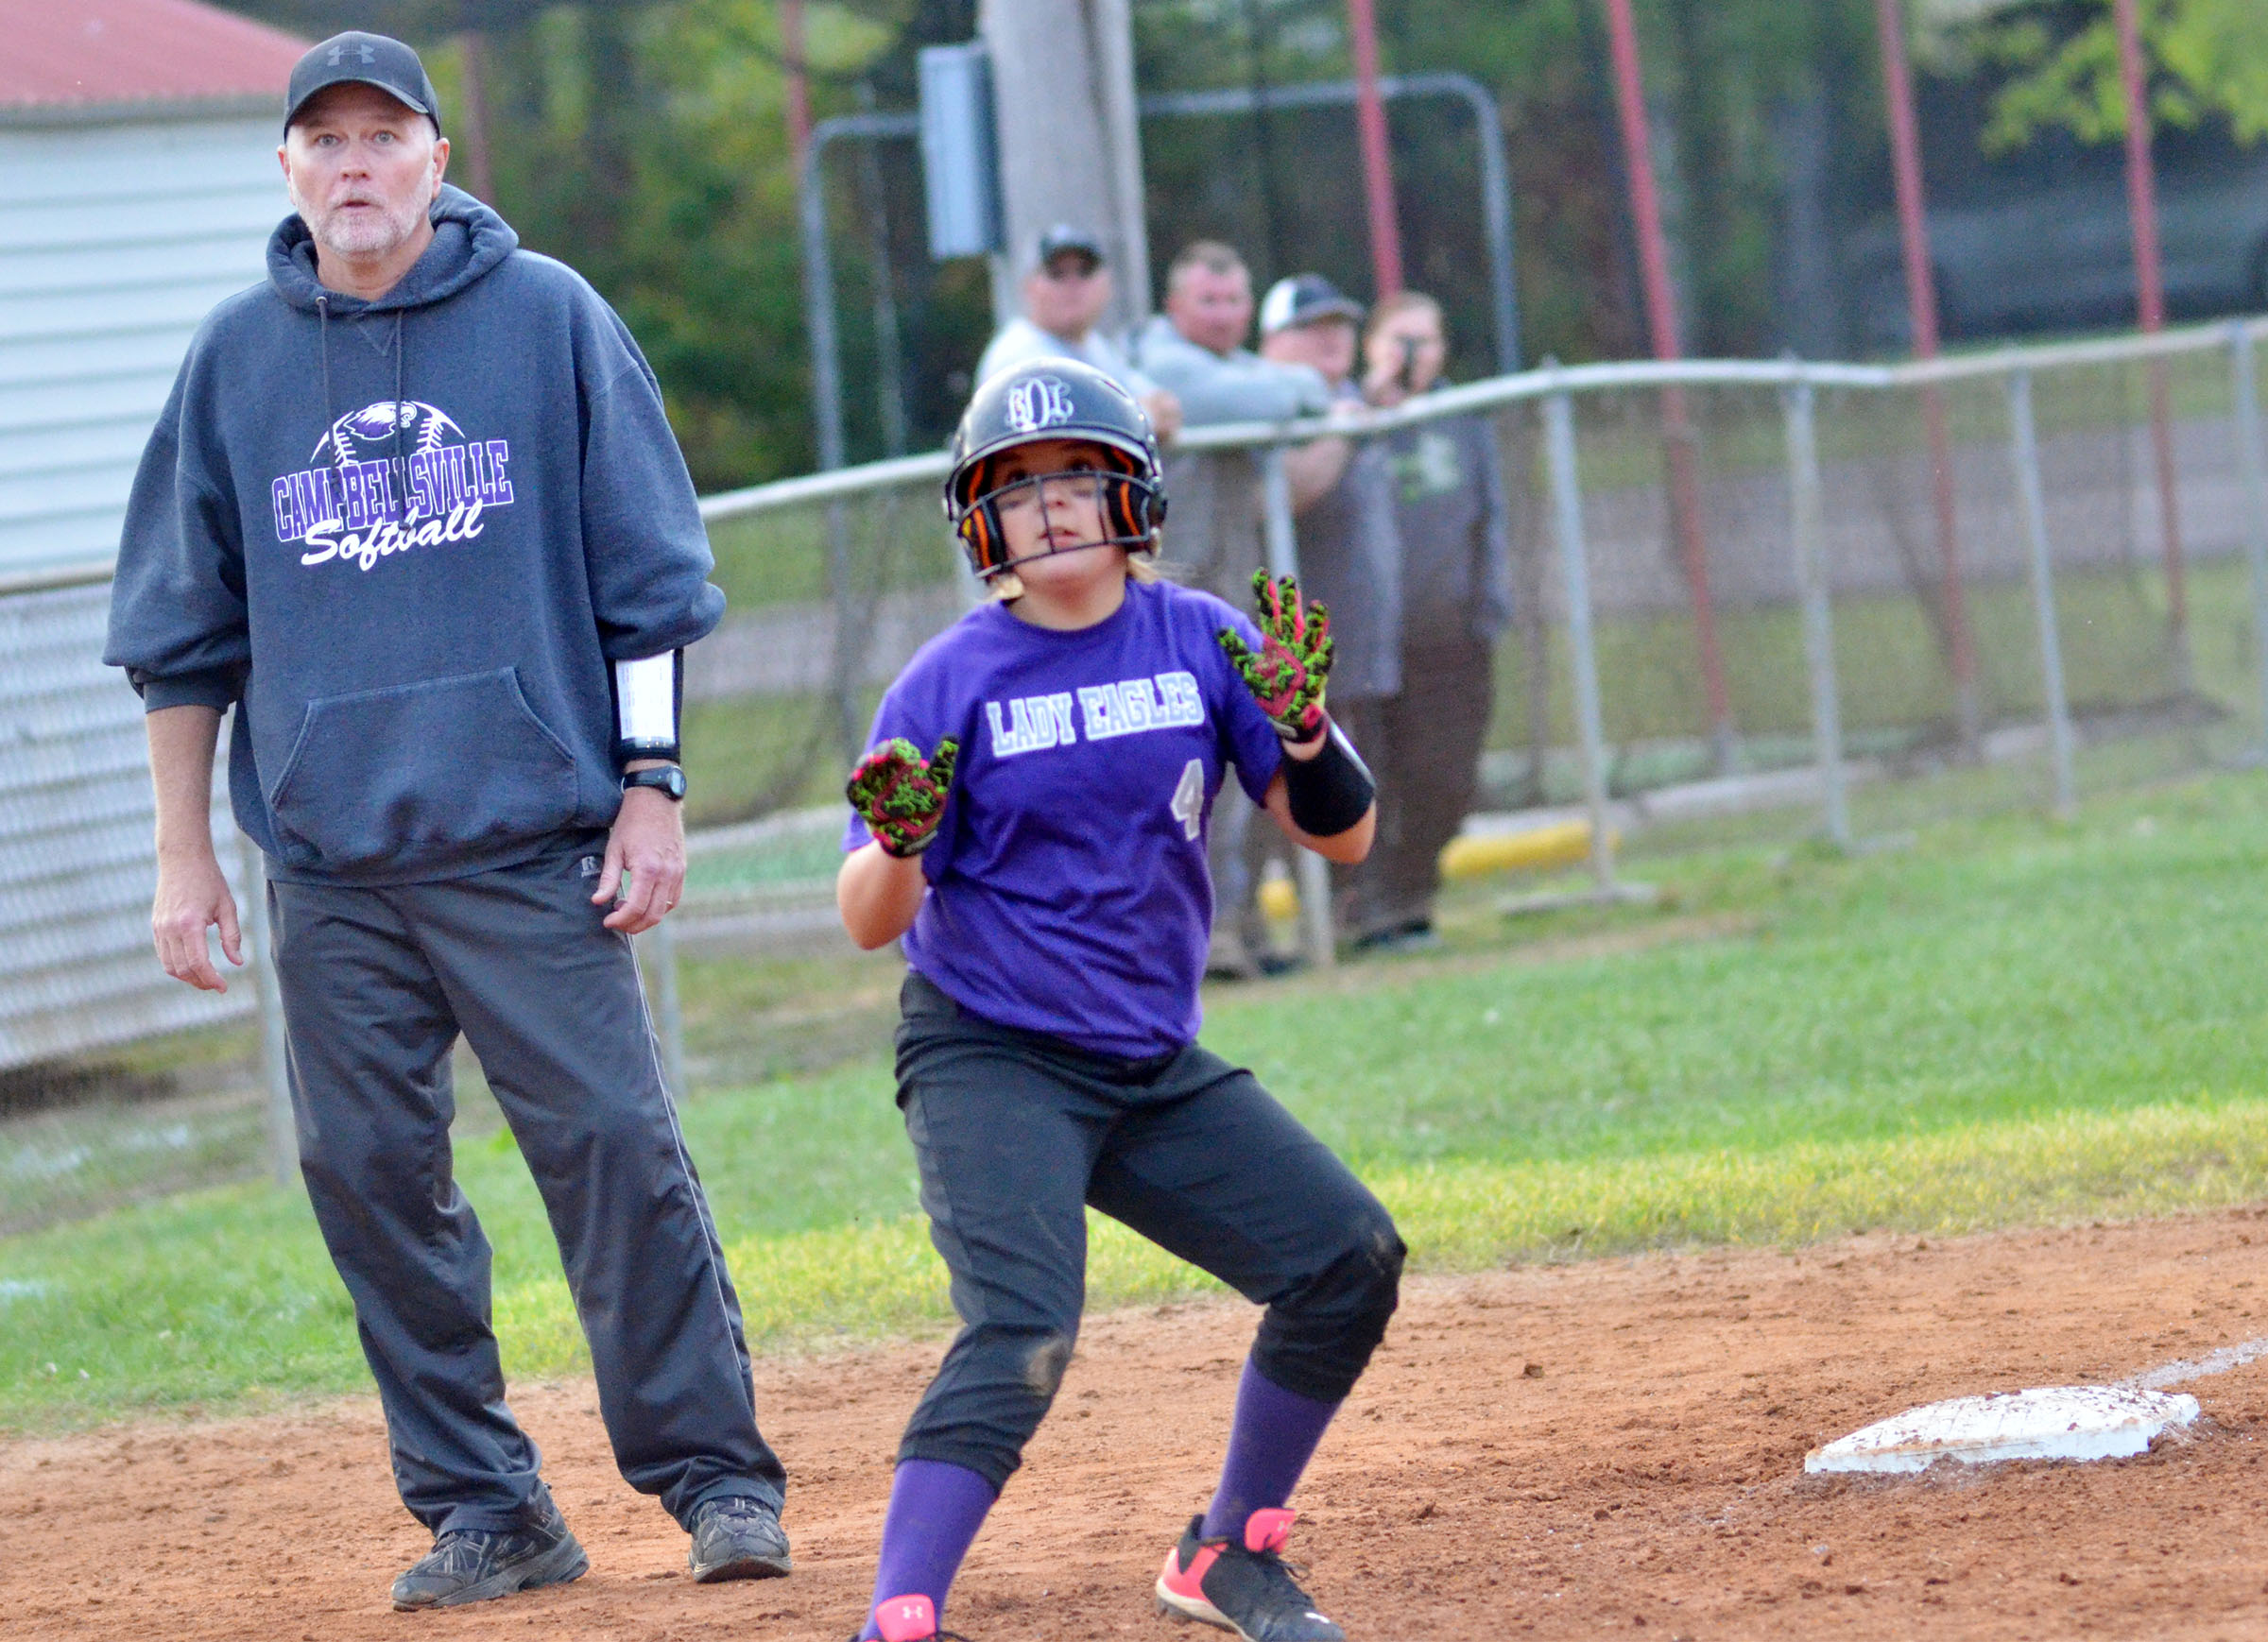 CMS sixth-grader Briana Davis watches the ball before running home.